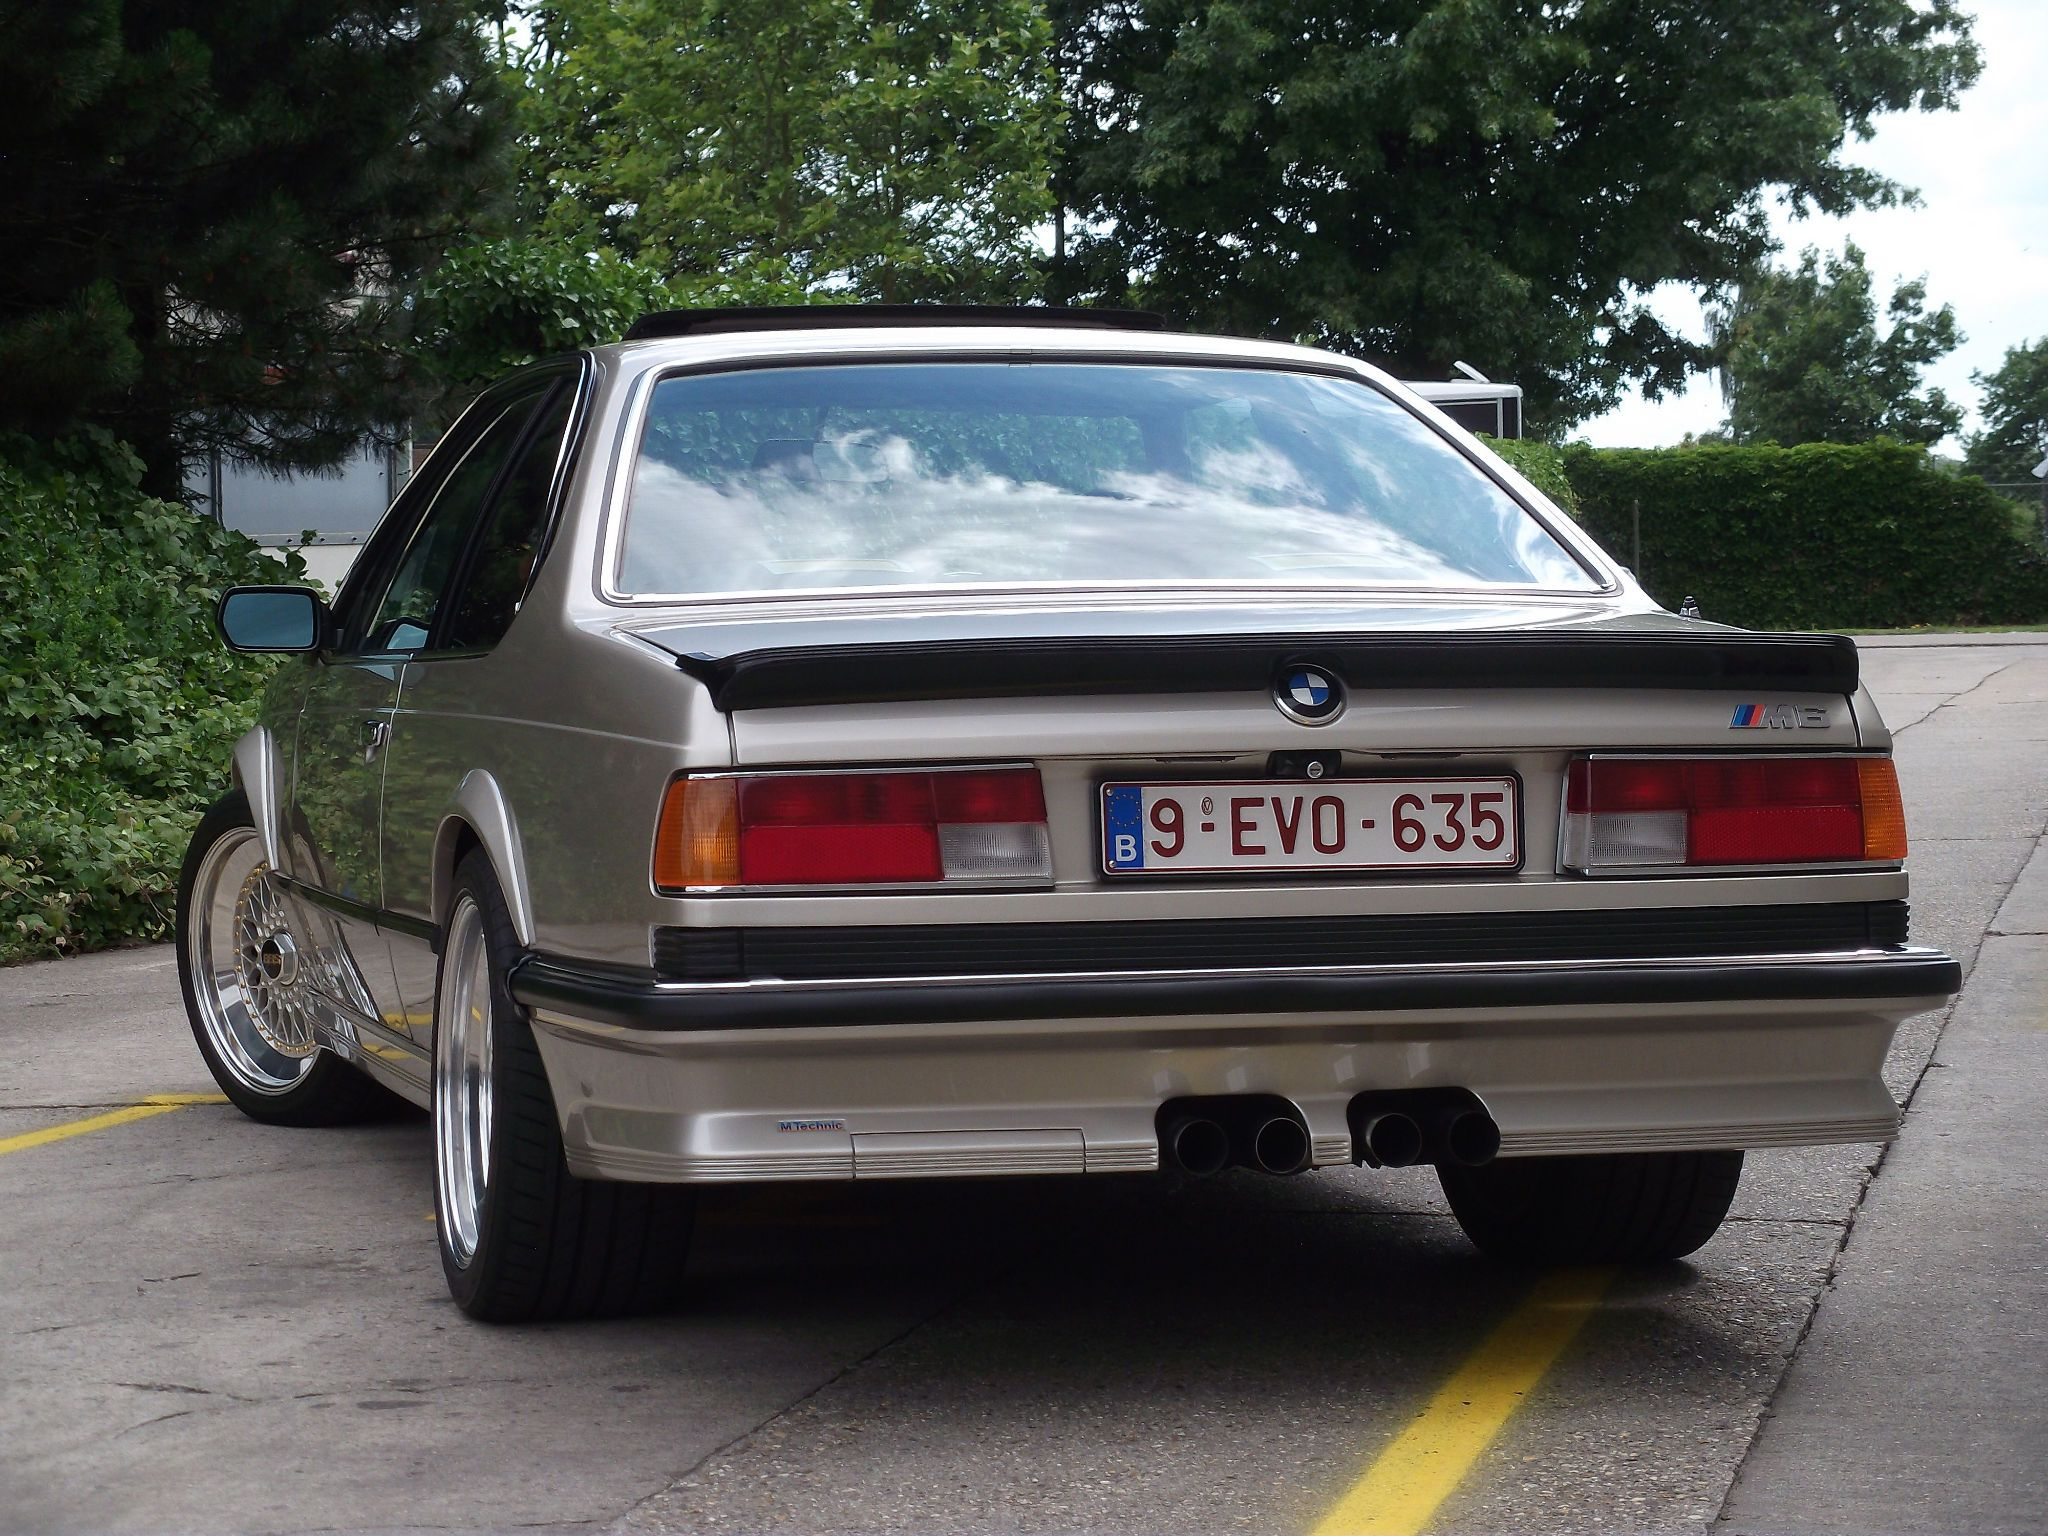 BMW M635 CSI  Google Search  best design  Pinterest  Search